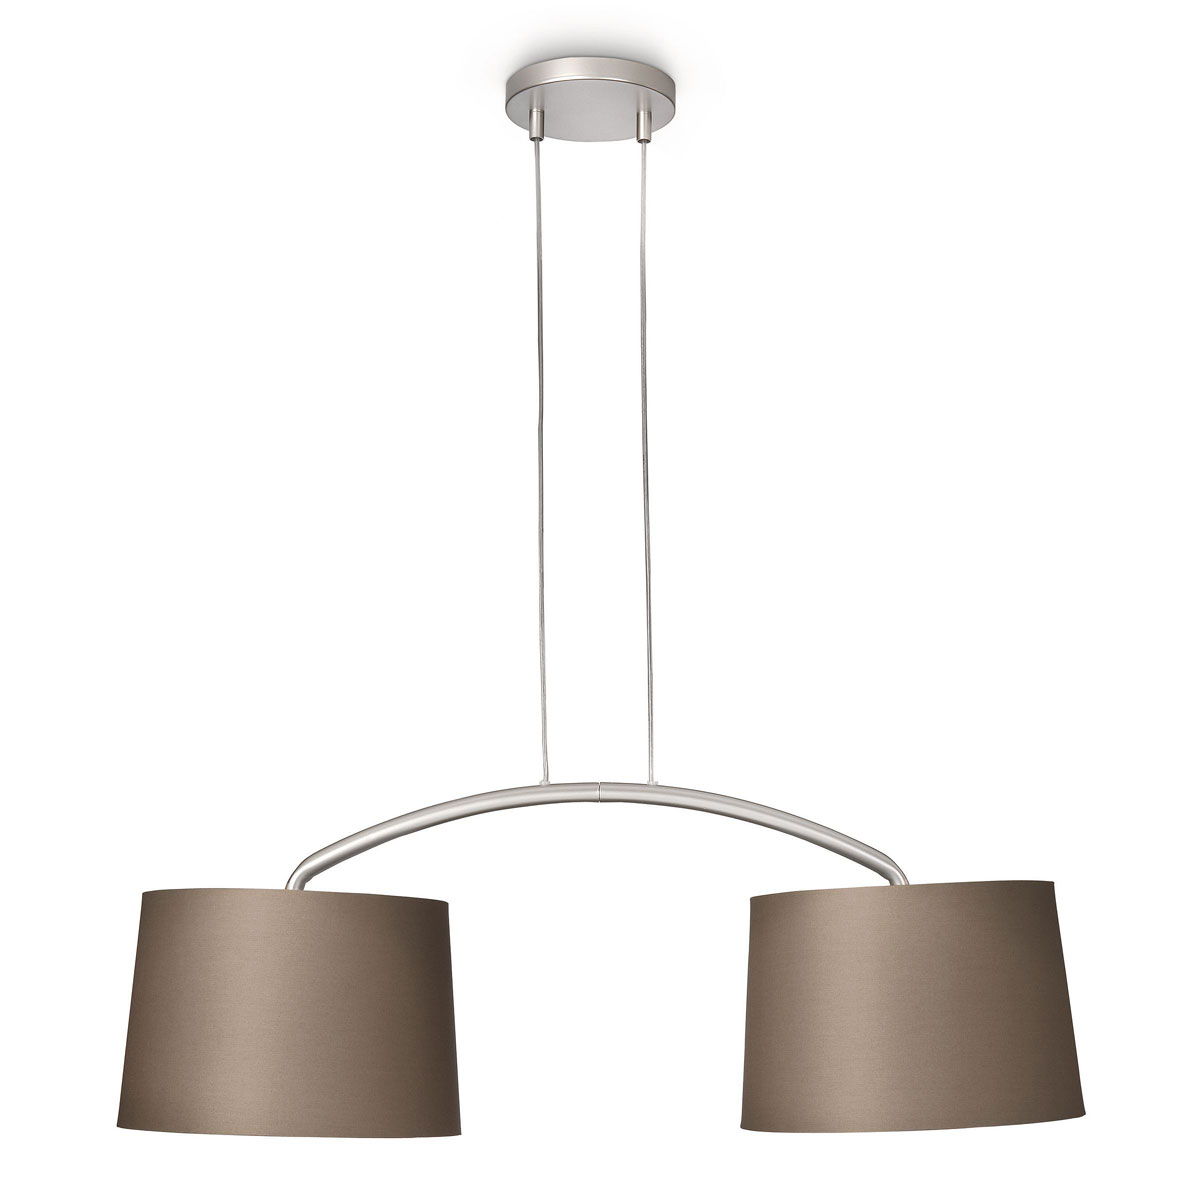 Philips myliving licius hanglamp grijs bruin taupe brown brushed - Bruin taupe ...